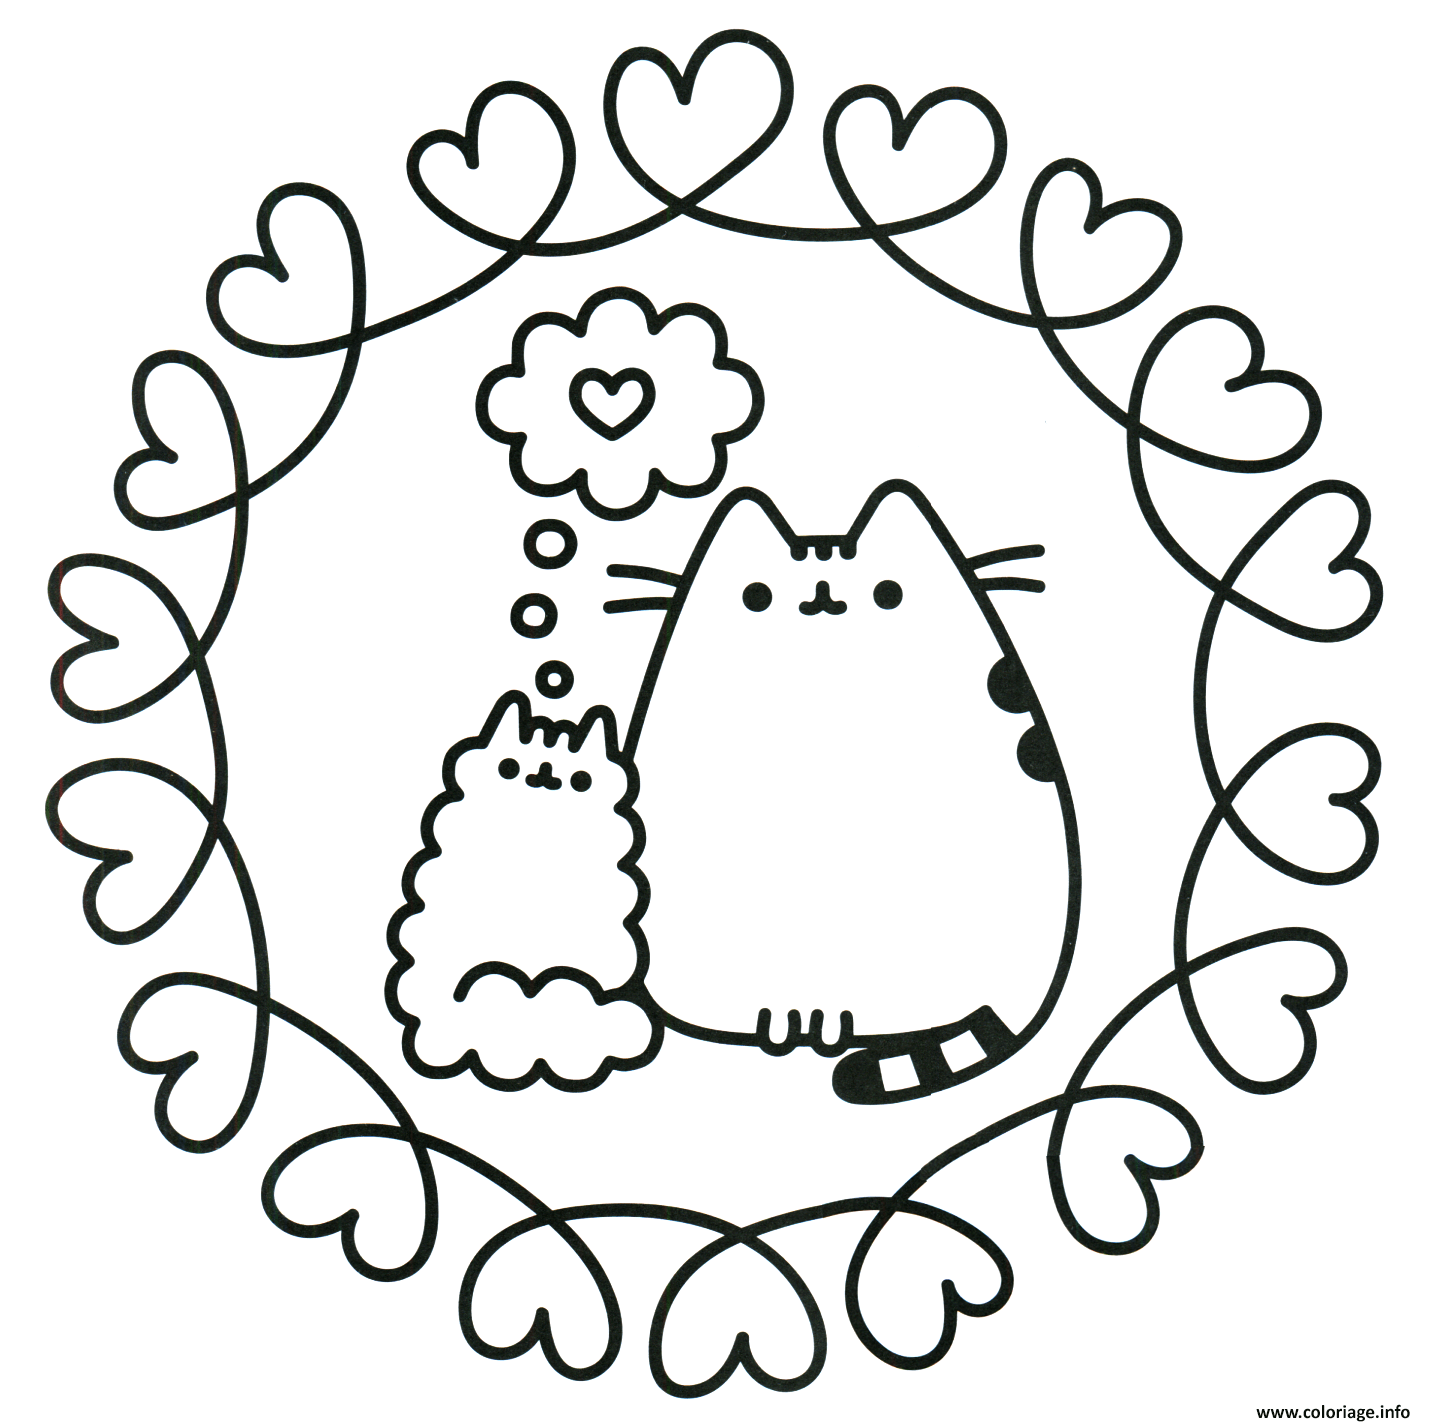 Dessin pusheen the cat en amour Coloriage Gratuit à Imprimer